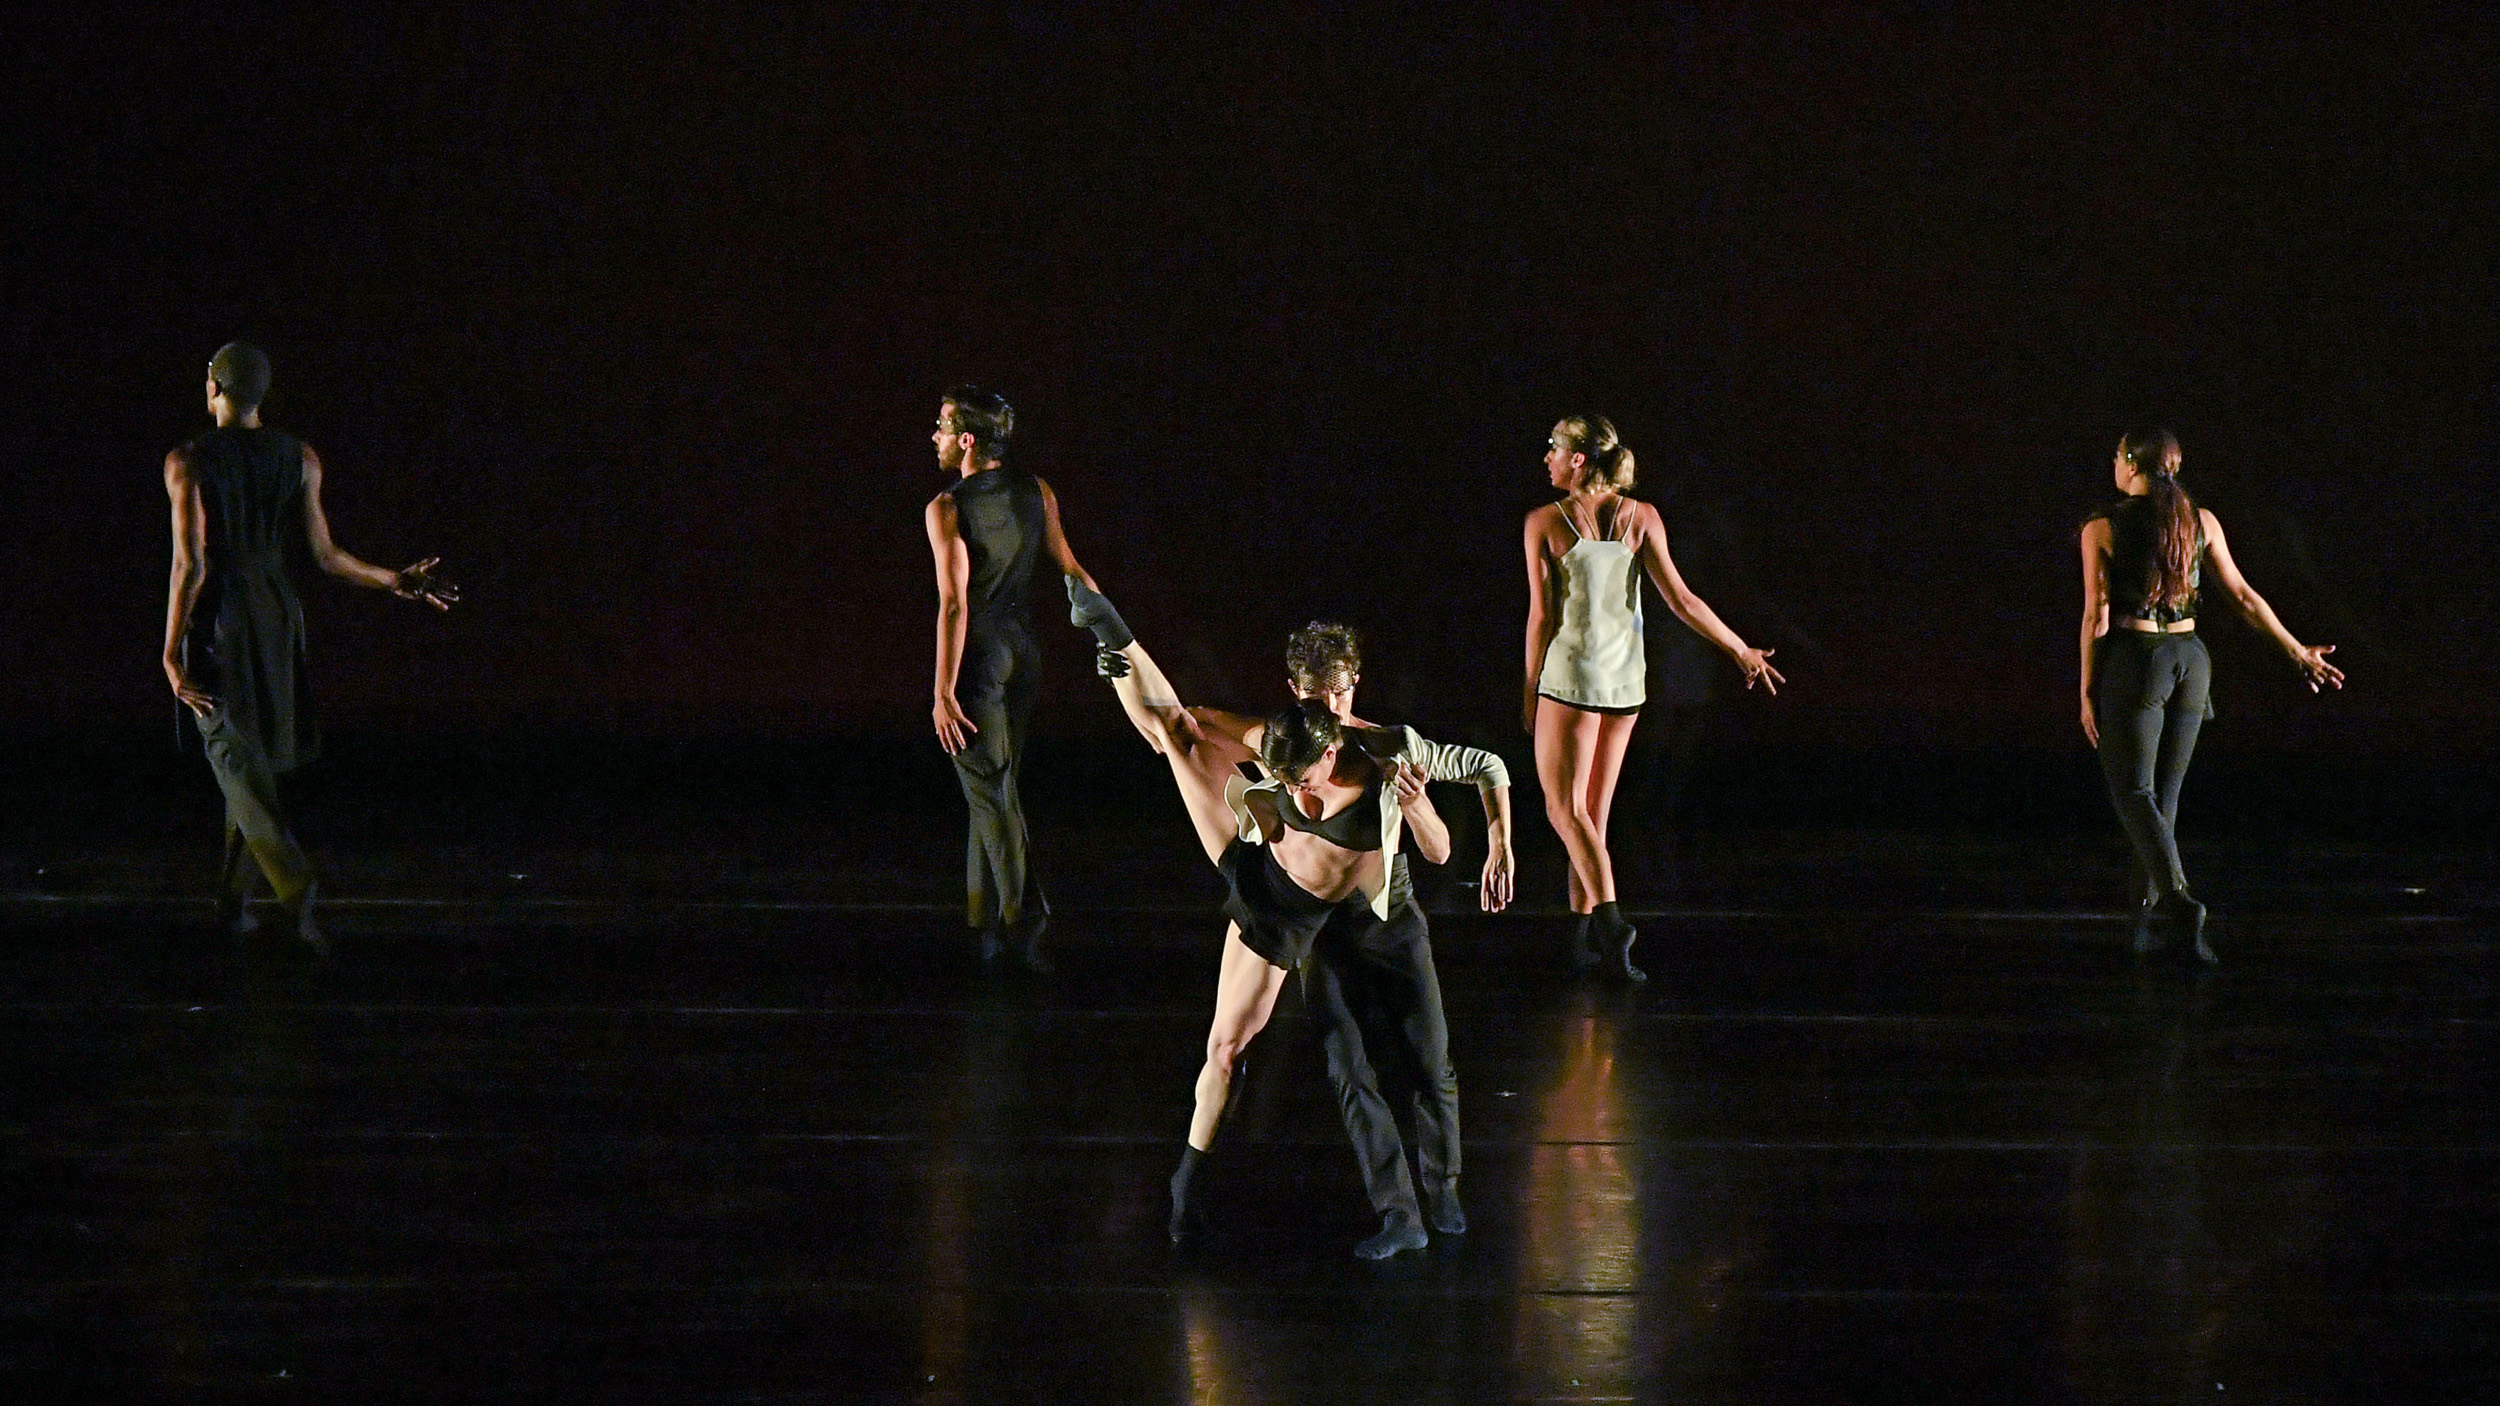 BODYTRAFFIC performing at the Wallis Annenberg Center for the Performing Arts May 31, 2018. Beyond the Edge of the Frame. Choreography: Sidra Bell. (l-r) Jamal White, Joseph Davis, Tina Finkelman Berkett, Guzmán Rosado, Natalie Leibert, Haley Heckethorn. PHOTO CREDIT: Rob Latour.